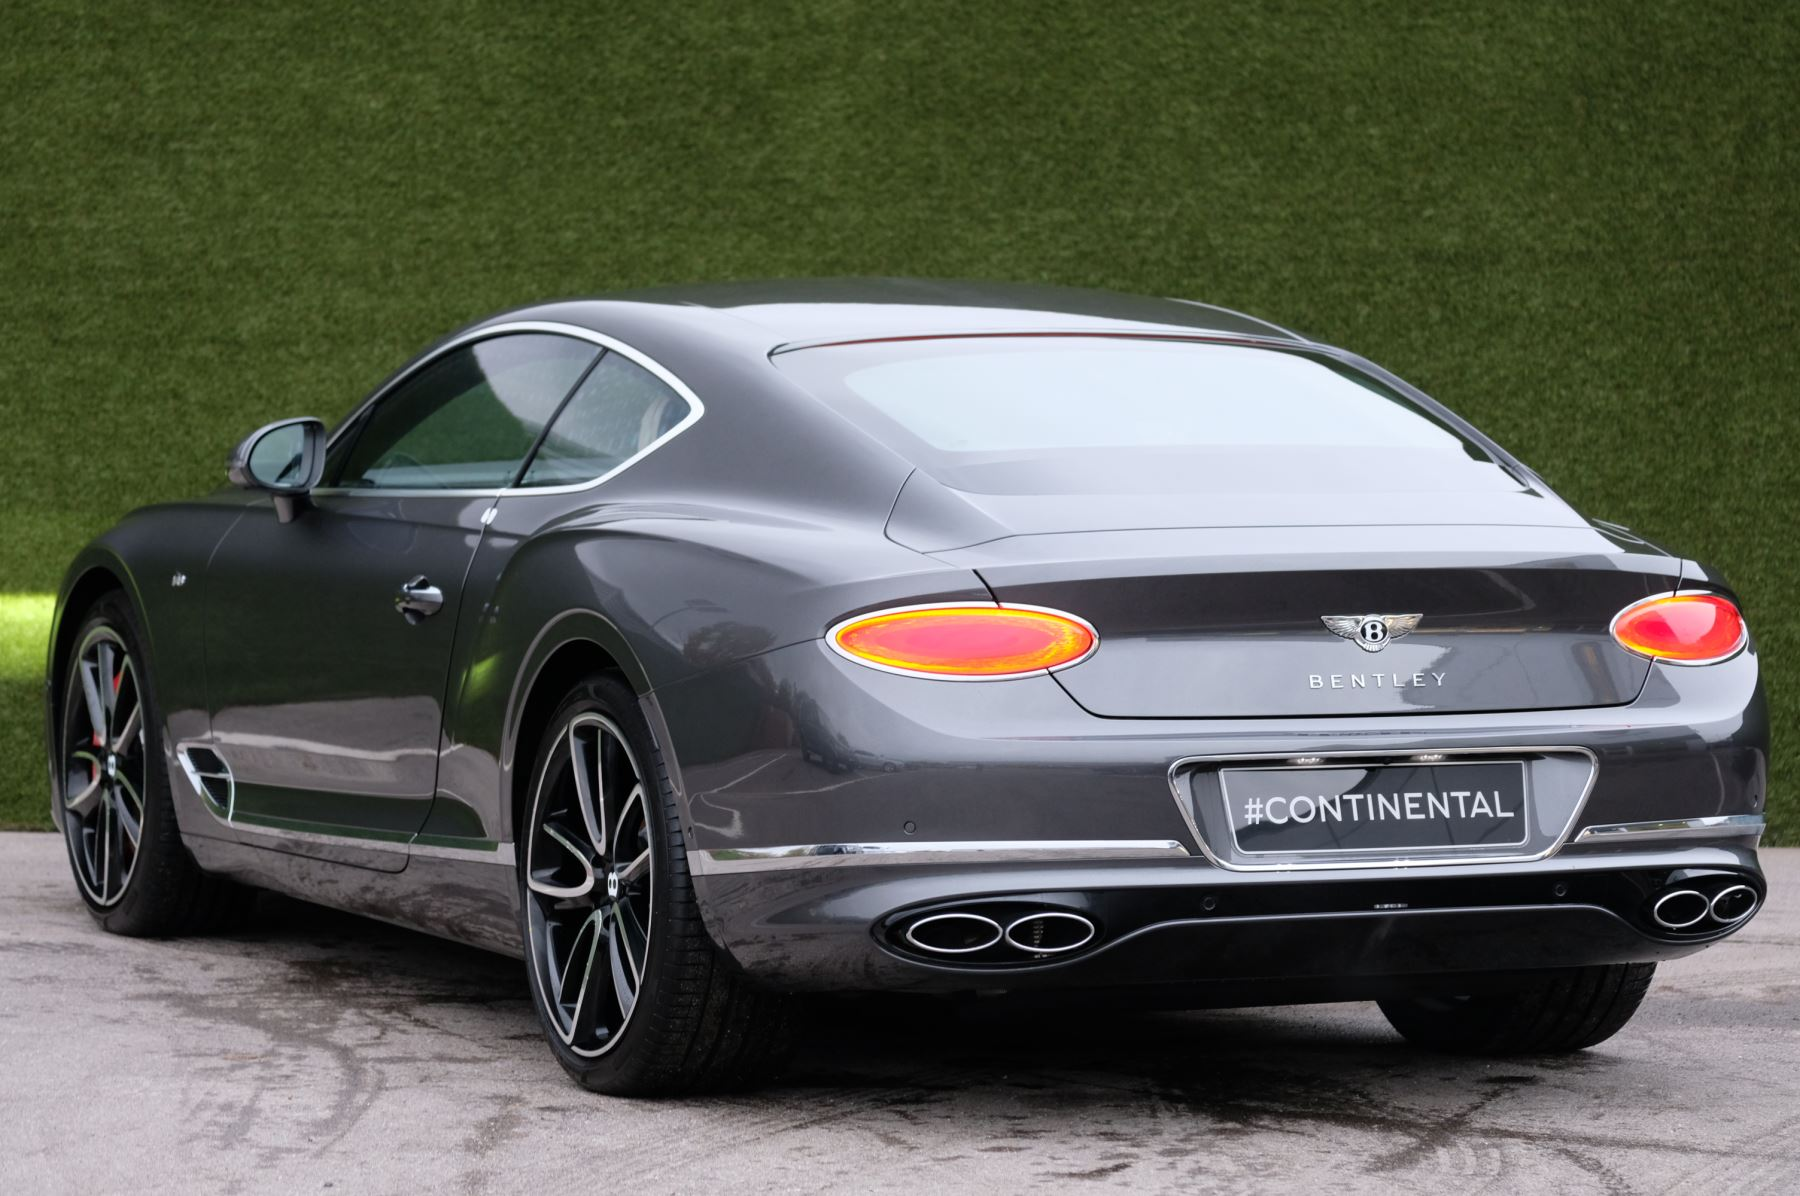 Bentley Continental GT 0.0 4.0 V8 Mulliner Driving Spec 2dr Auto (City+Tour)